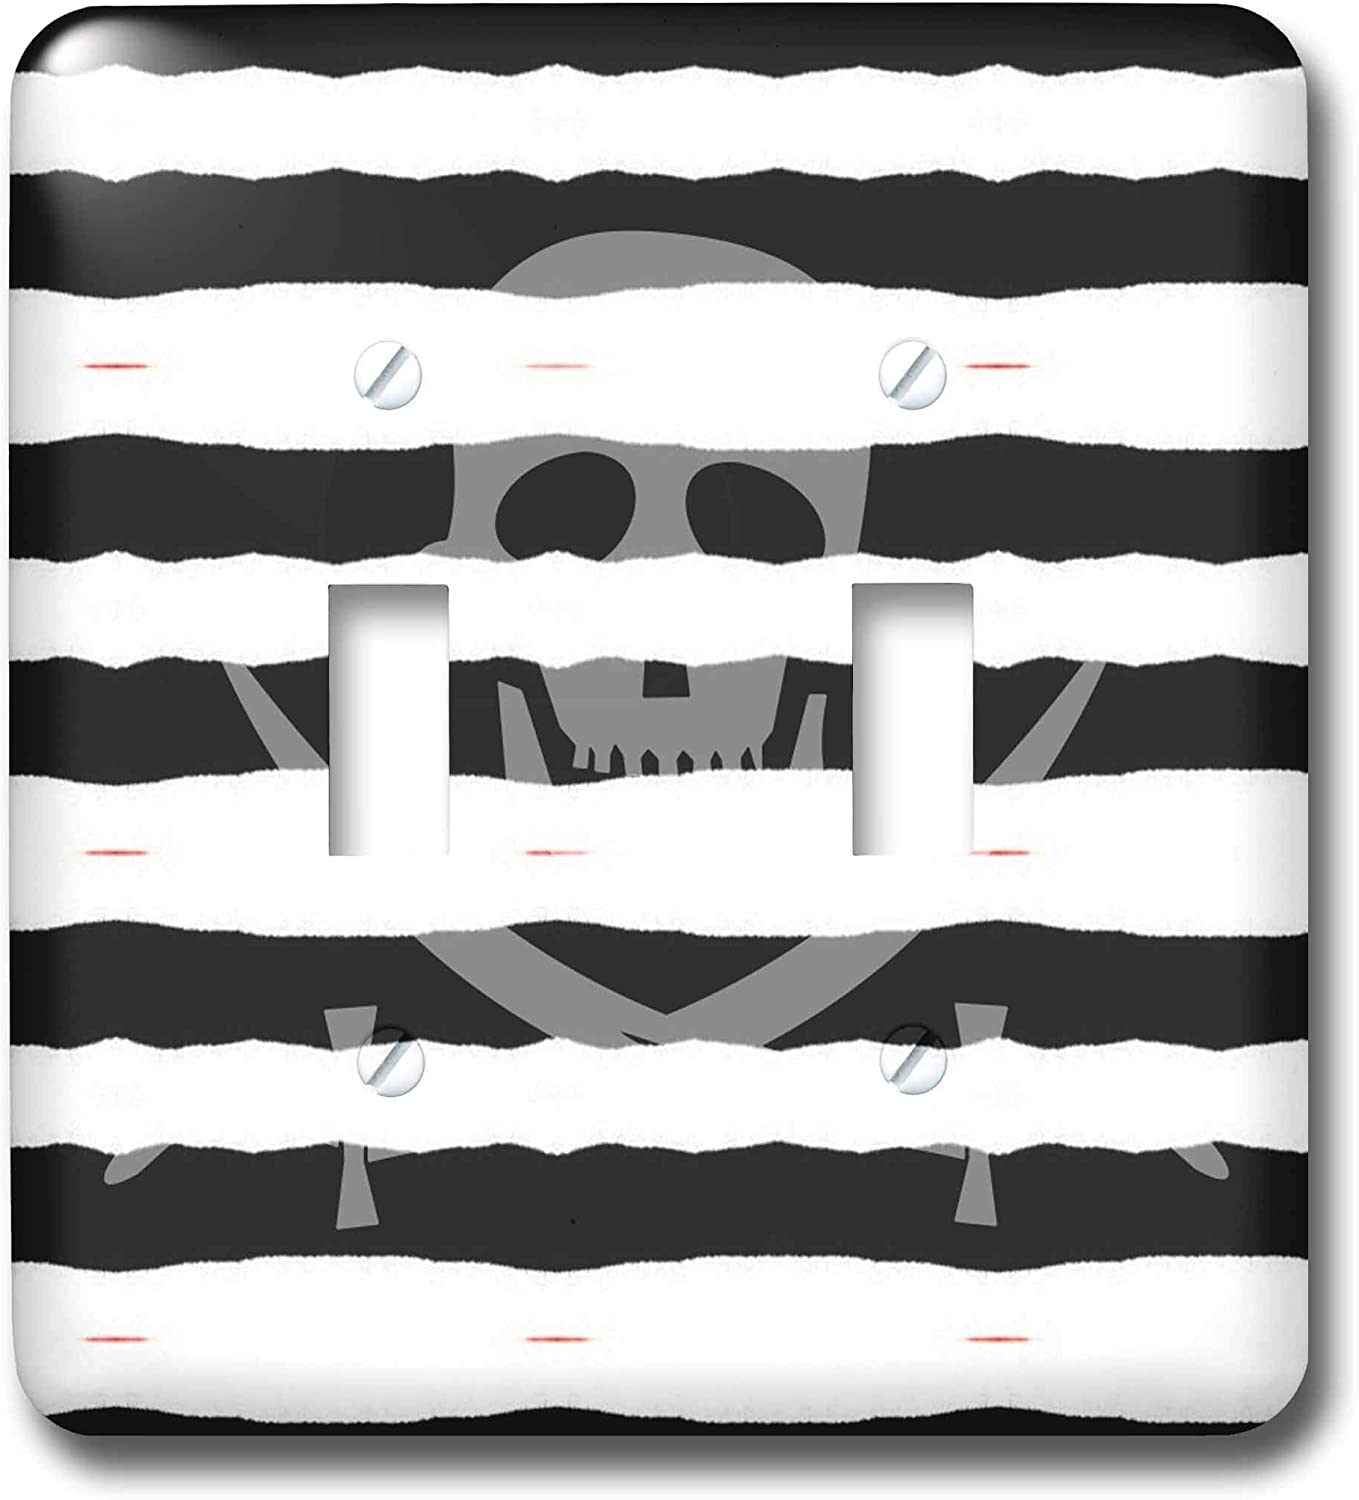 3drose Lsp 33717 2 Pirate Skull And Crossbones Black And White Stripes Design Toggle Switch Switch Plates